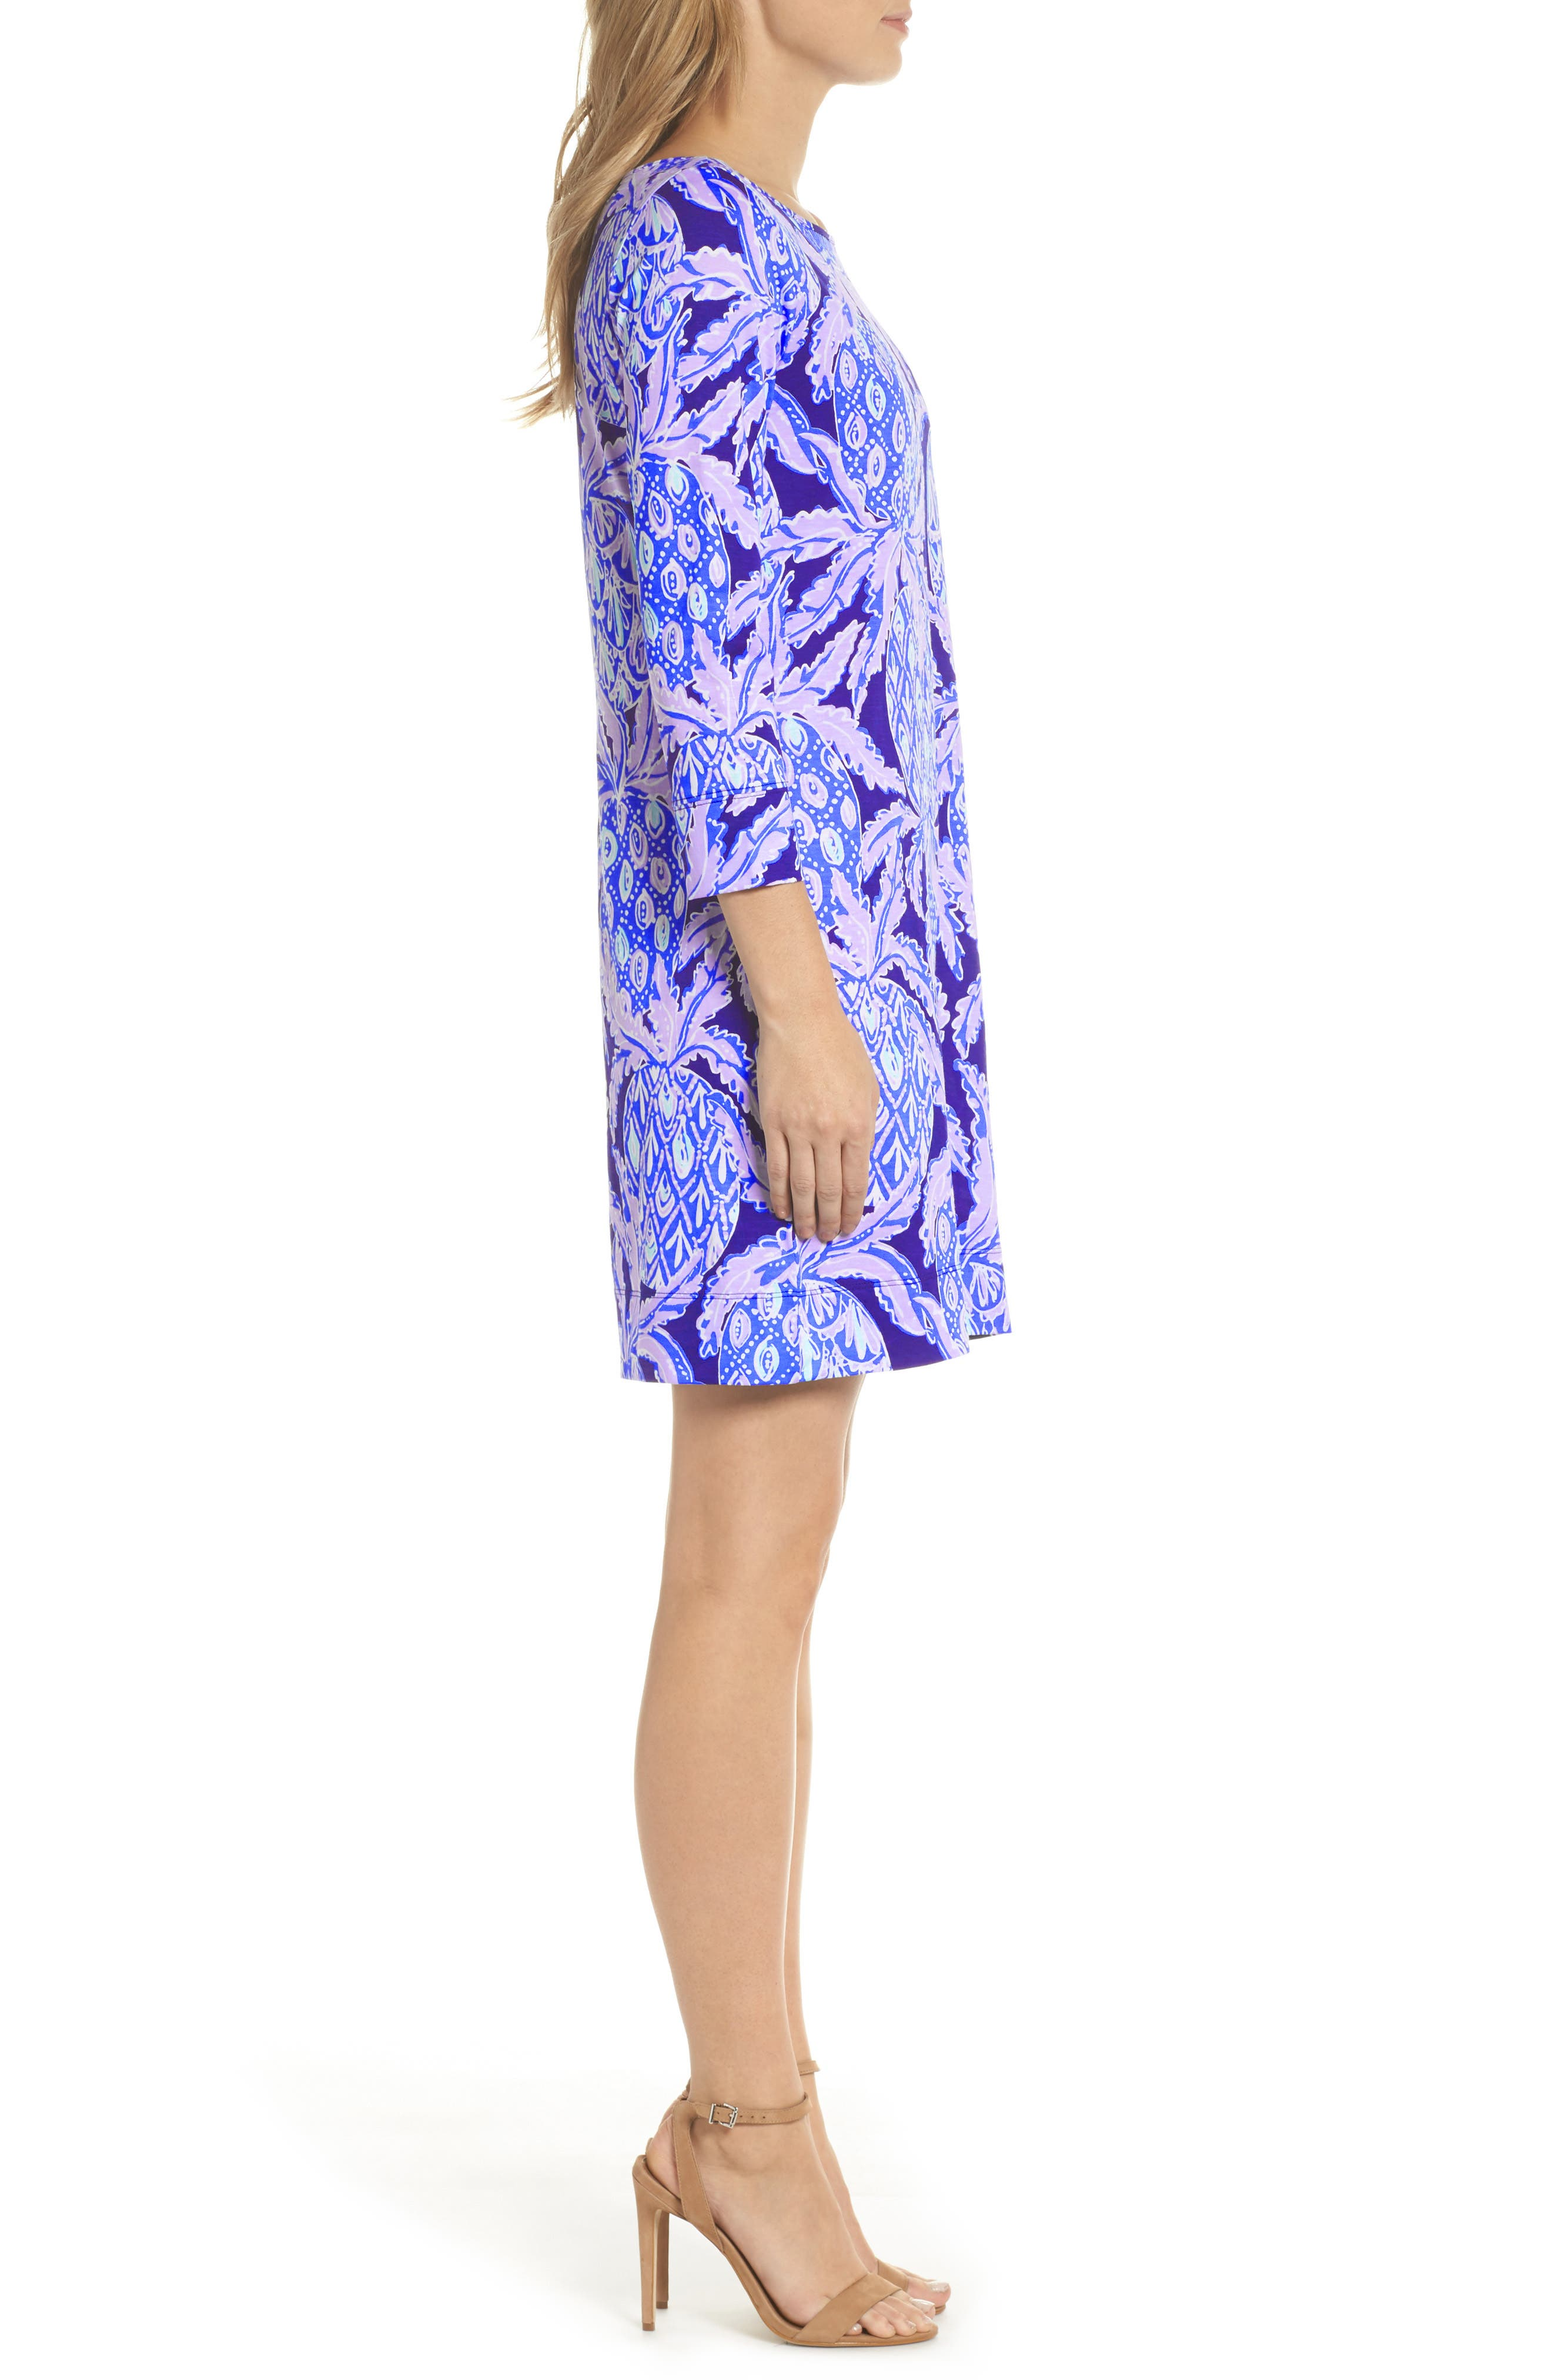 Marlowe Shift Dress,                             Alternate thumbnail 2, color,                             Lilac Verbena Coco Safari